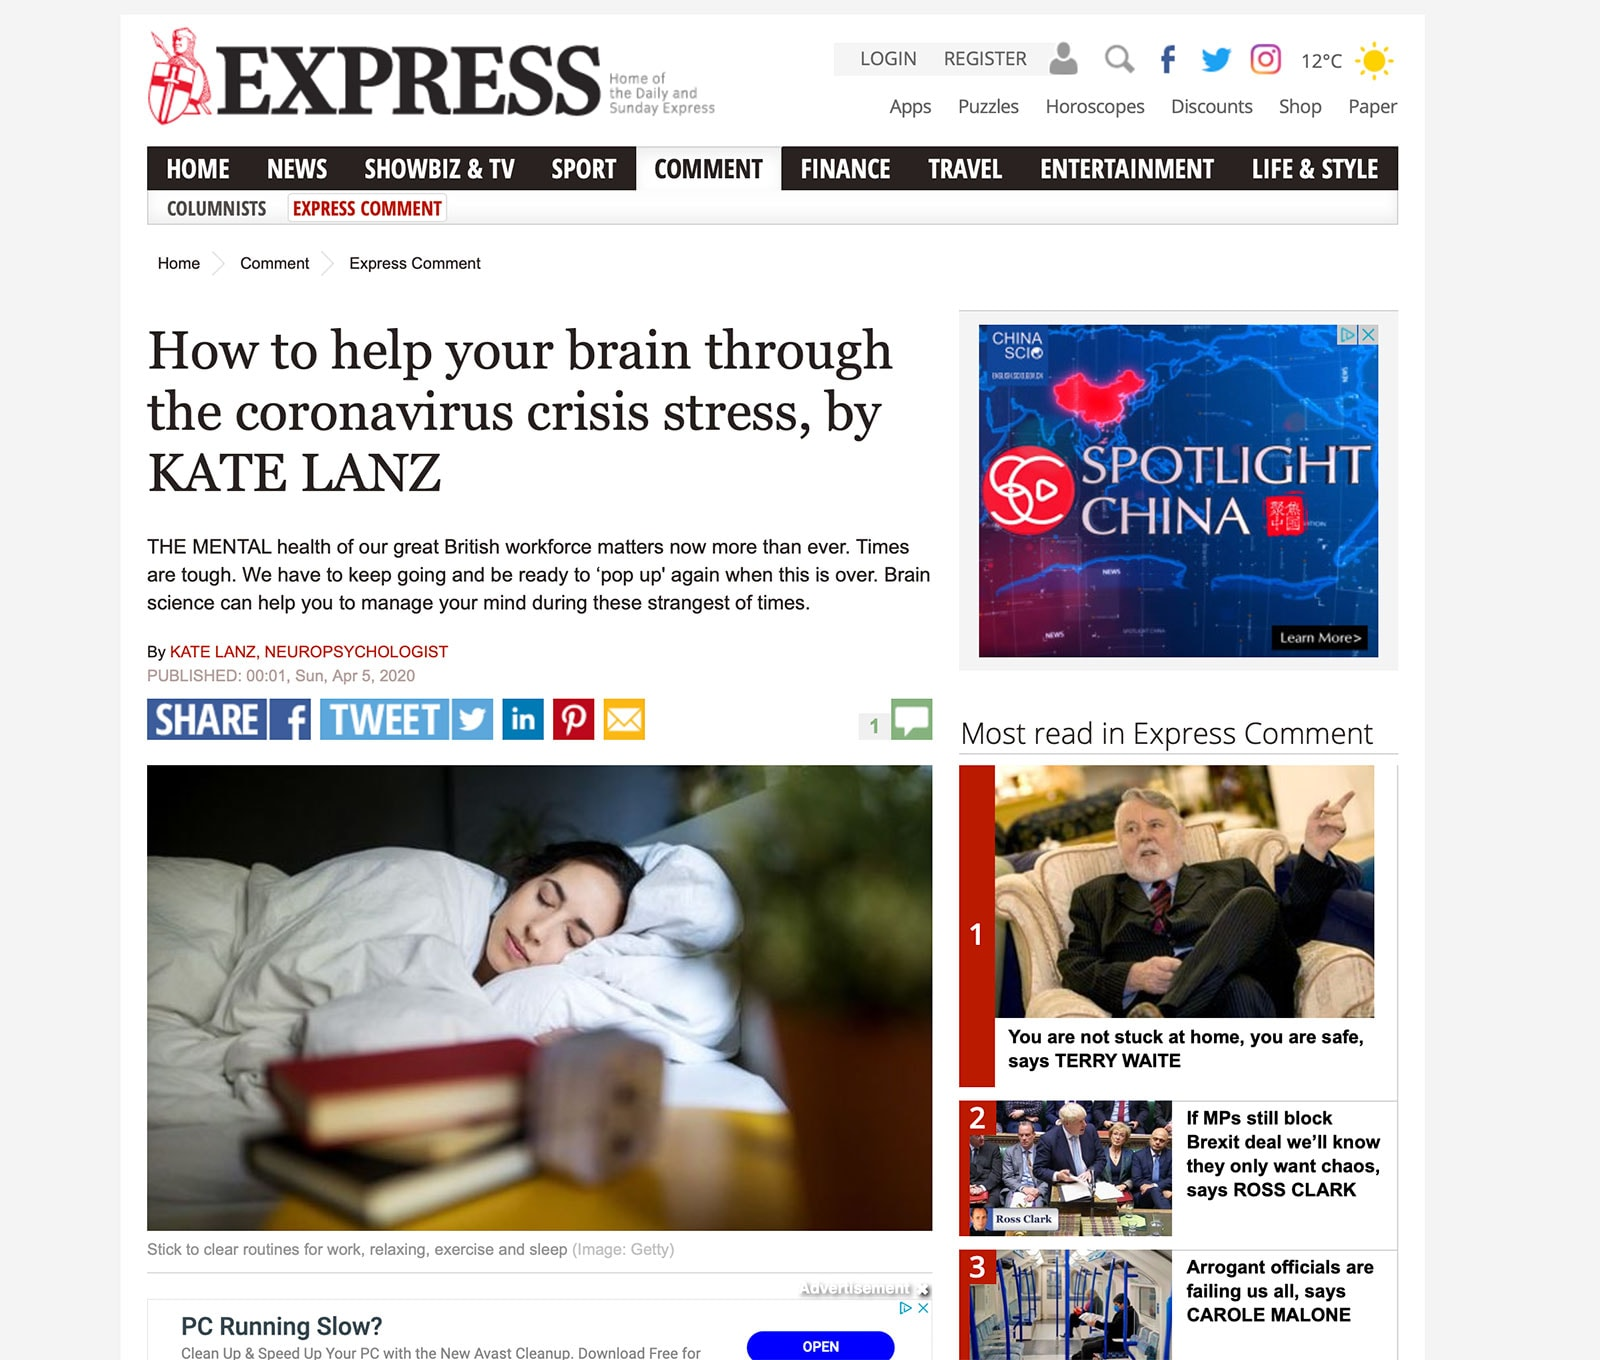 How to help your brain through the coronavirus crisis stress in The Express